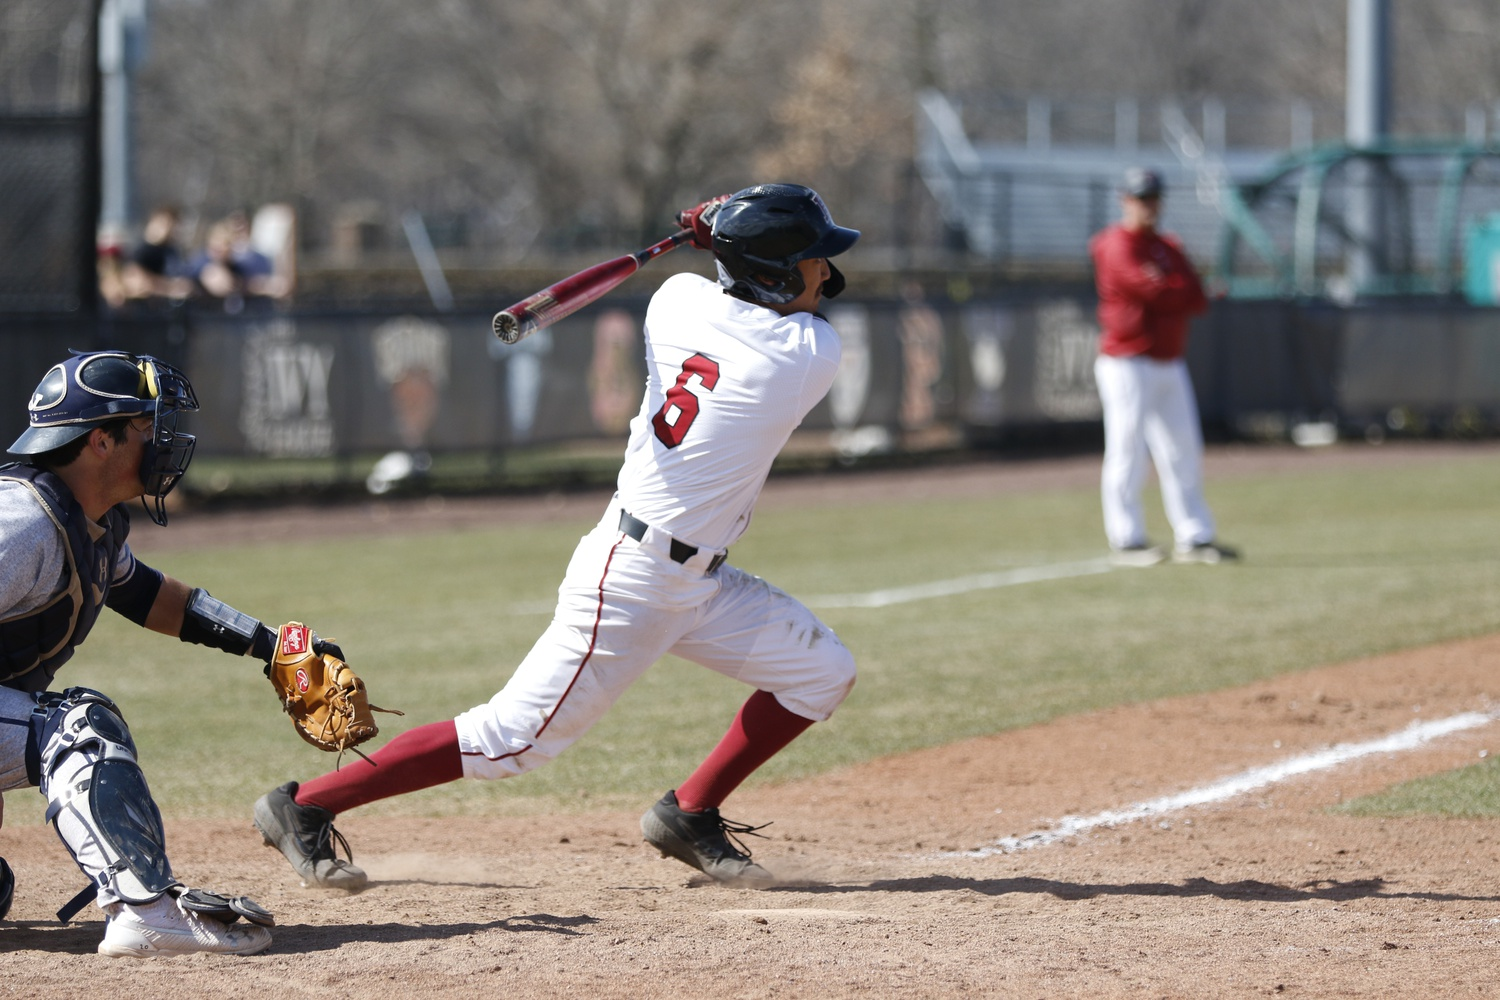 The Ivy League has yet to determine whether spring sports, such as baseball, will move forward with their seasons amid the coronavirus pandemic.